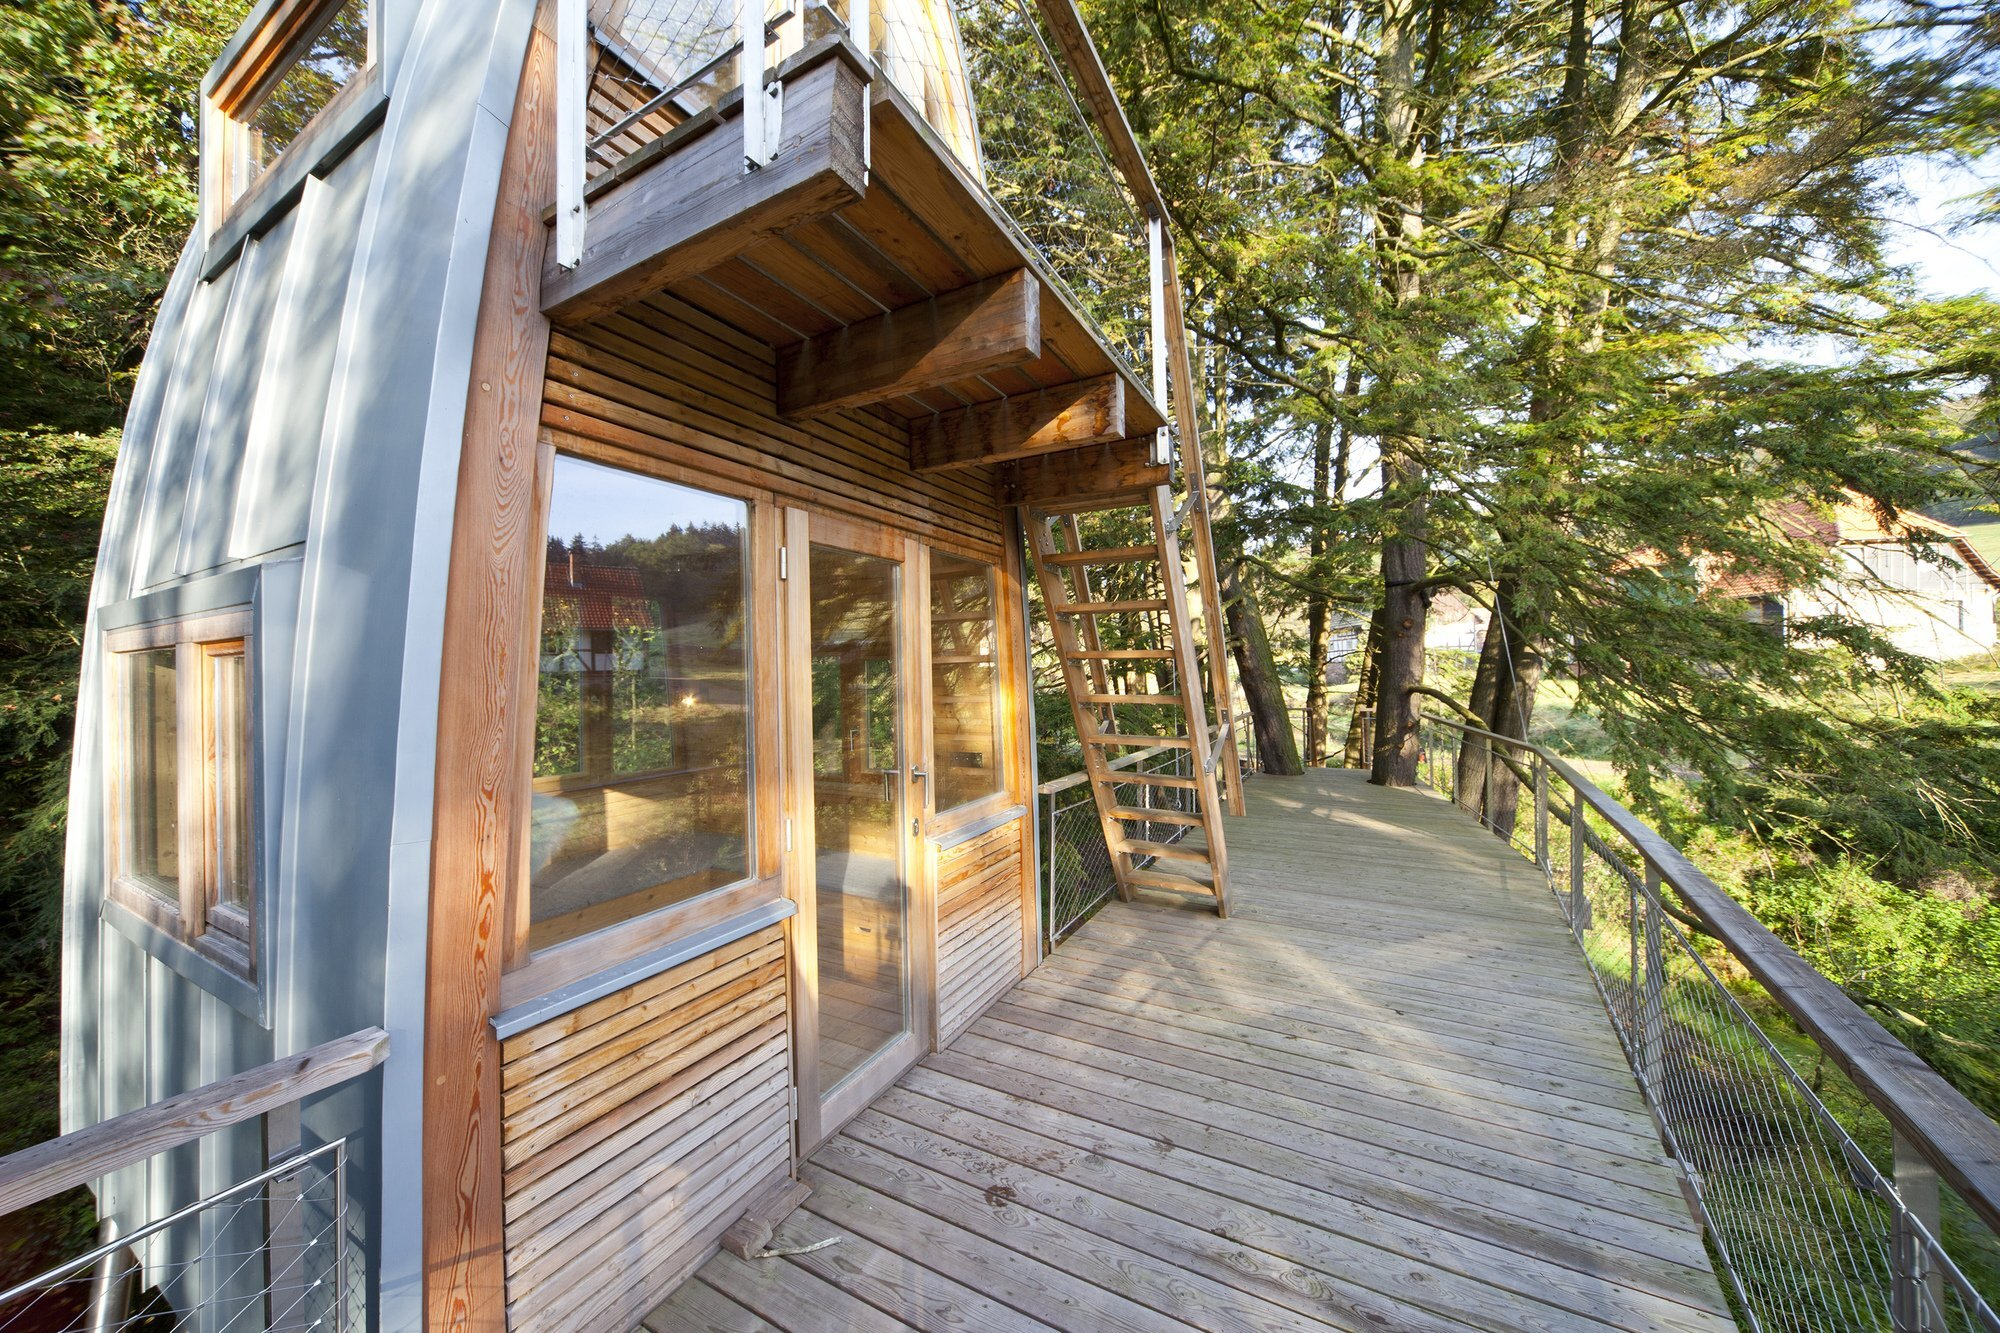 Treehouse Solling by Baumraum - Uslar Germany - Treehouse - Balcony - Humble Homes